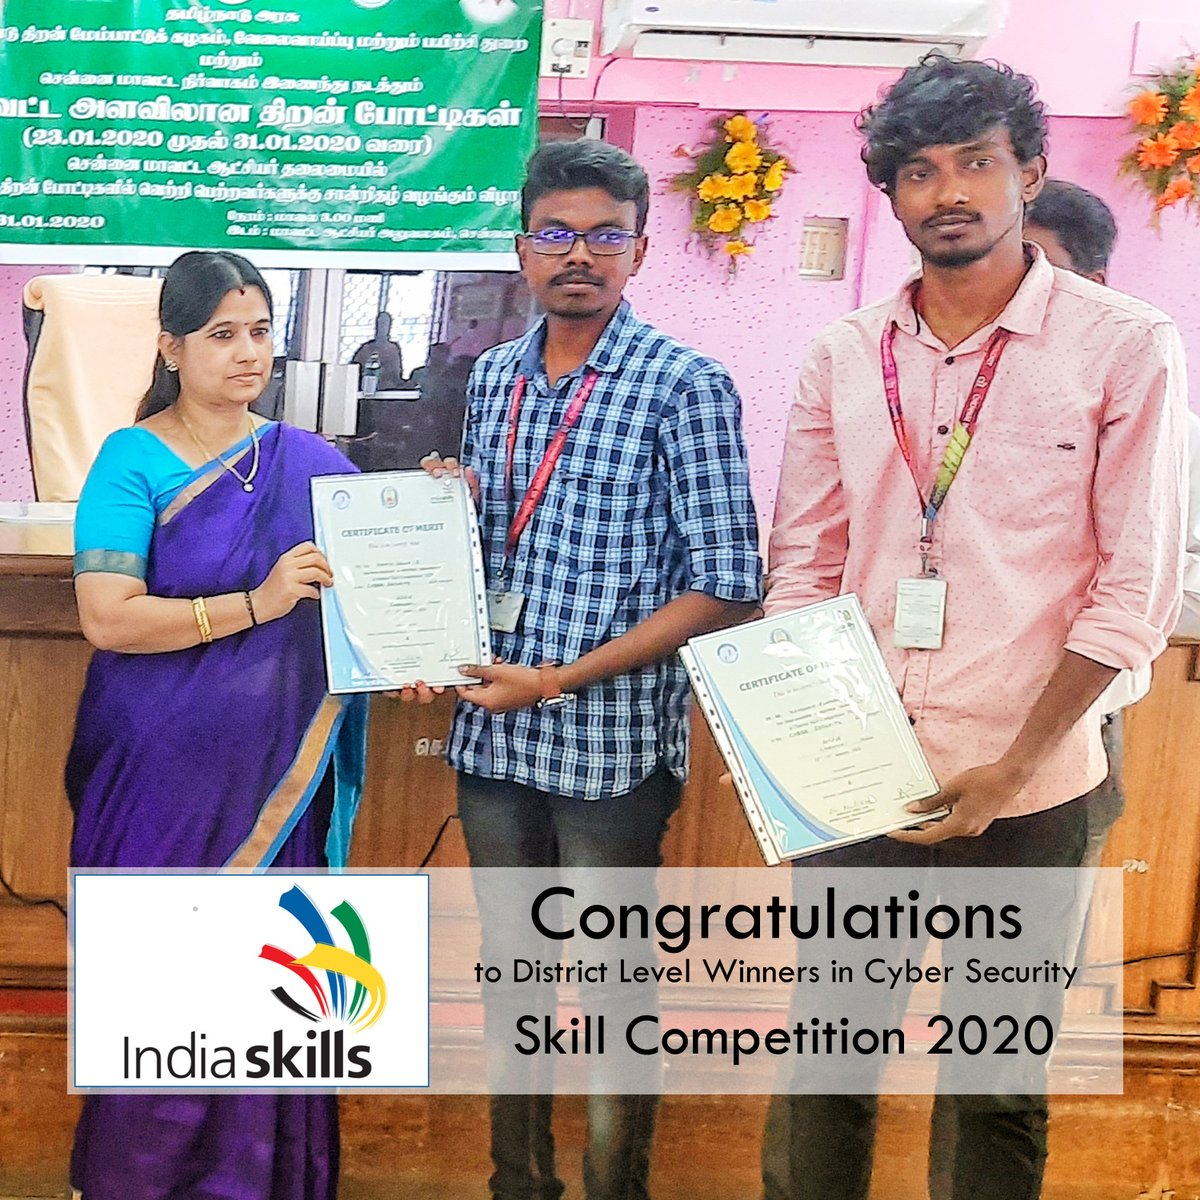 Congratulations to Mr.S.Vinith Selva of 4th Year CSE &  Kannan Elangovan of 4th Year CSE - the District Level Winners in Cyber Security Skill Competition 2020 #ChennaiInstituteOfTechnology #TransformingLives #Engineering #enjoyableCampusLife #HappyCampus #SkillCompetitionpic.twitter.com/OyAZrvoMNq